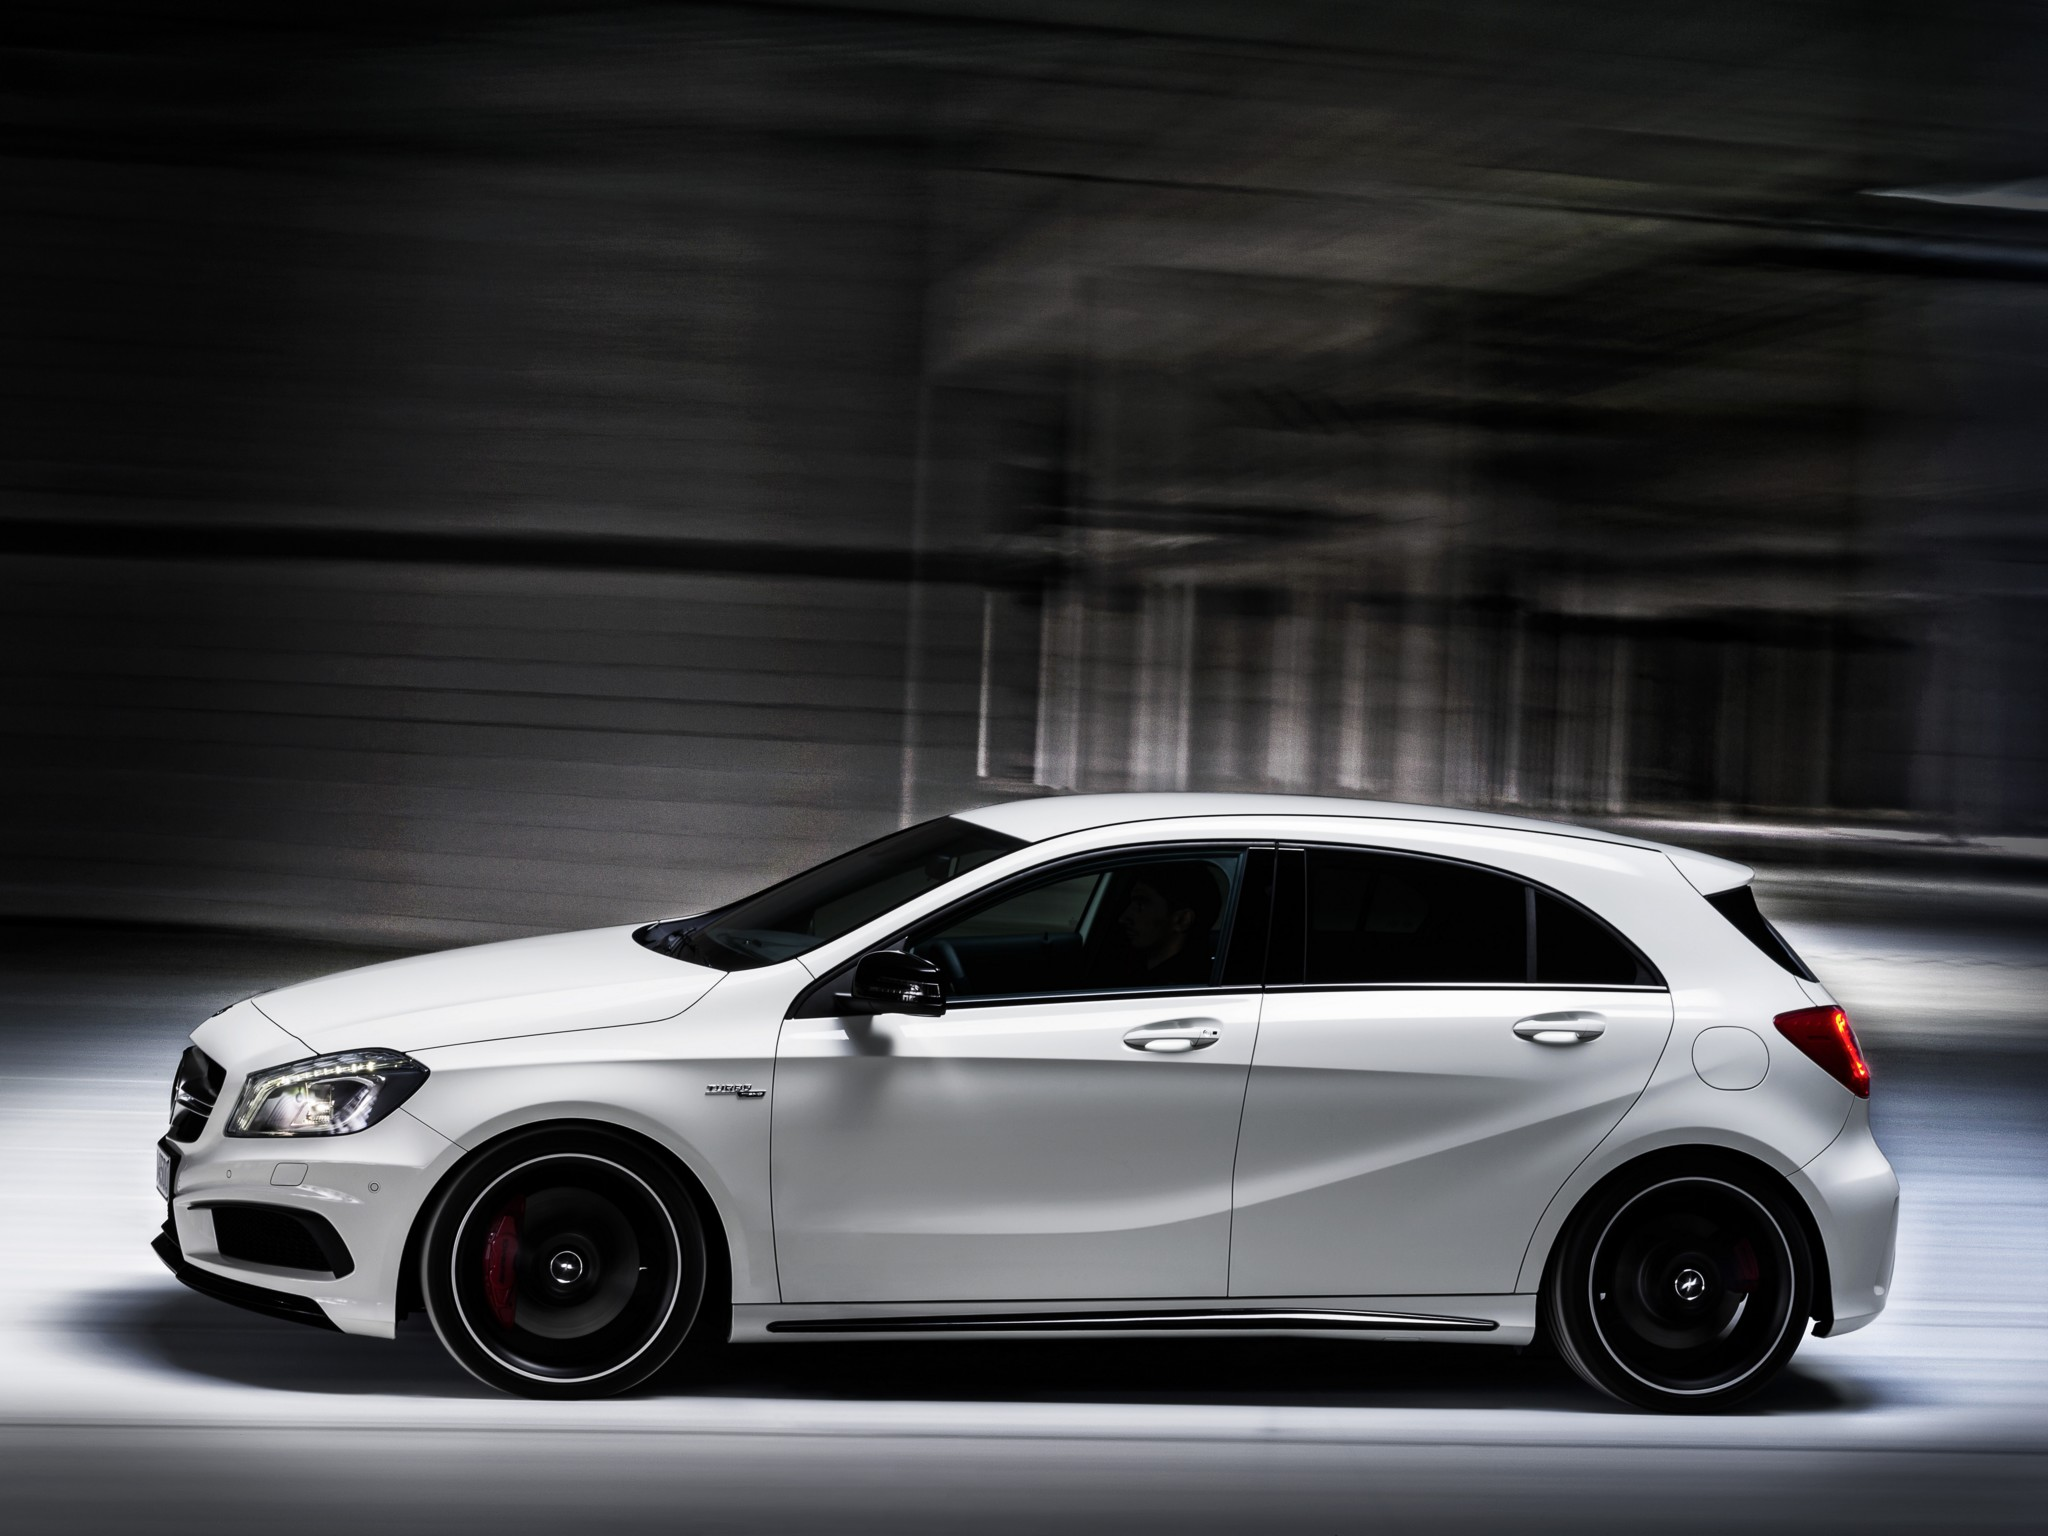 mercedes benz a45 amg w176 specs photos 2013 2014 2015 autoevolution. Black Bedroom Furniture Sets. Home Design Ideas